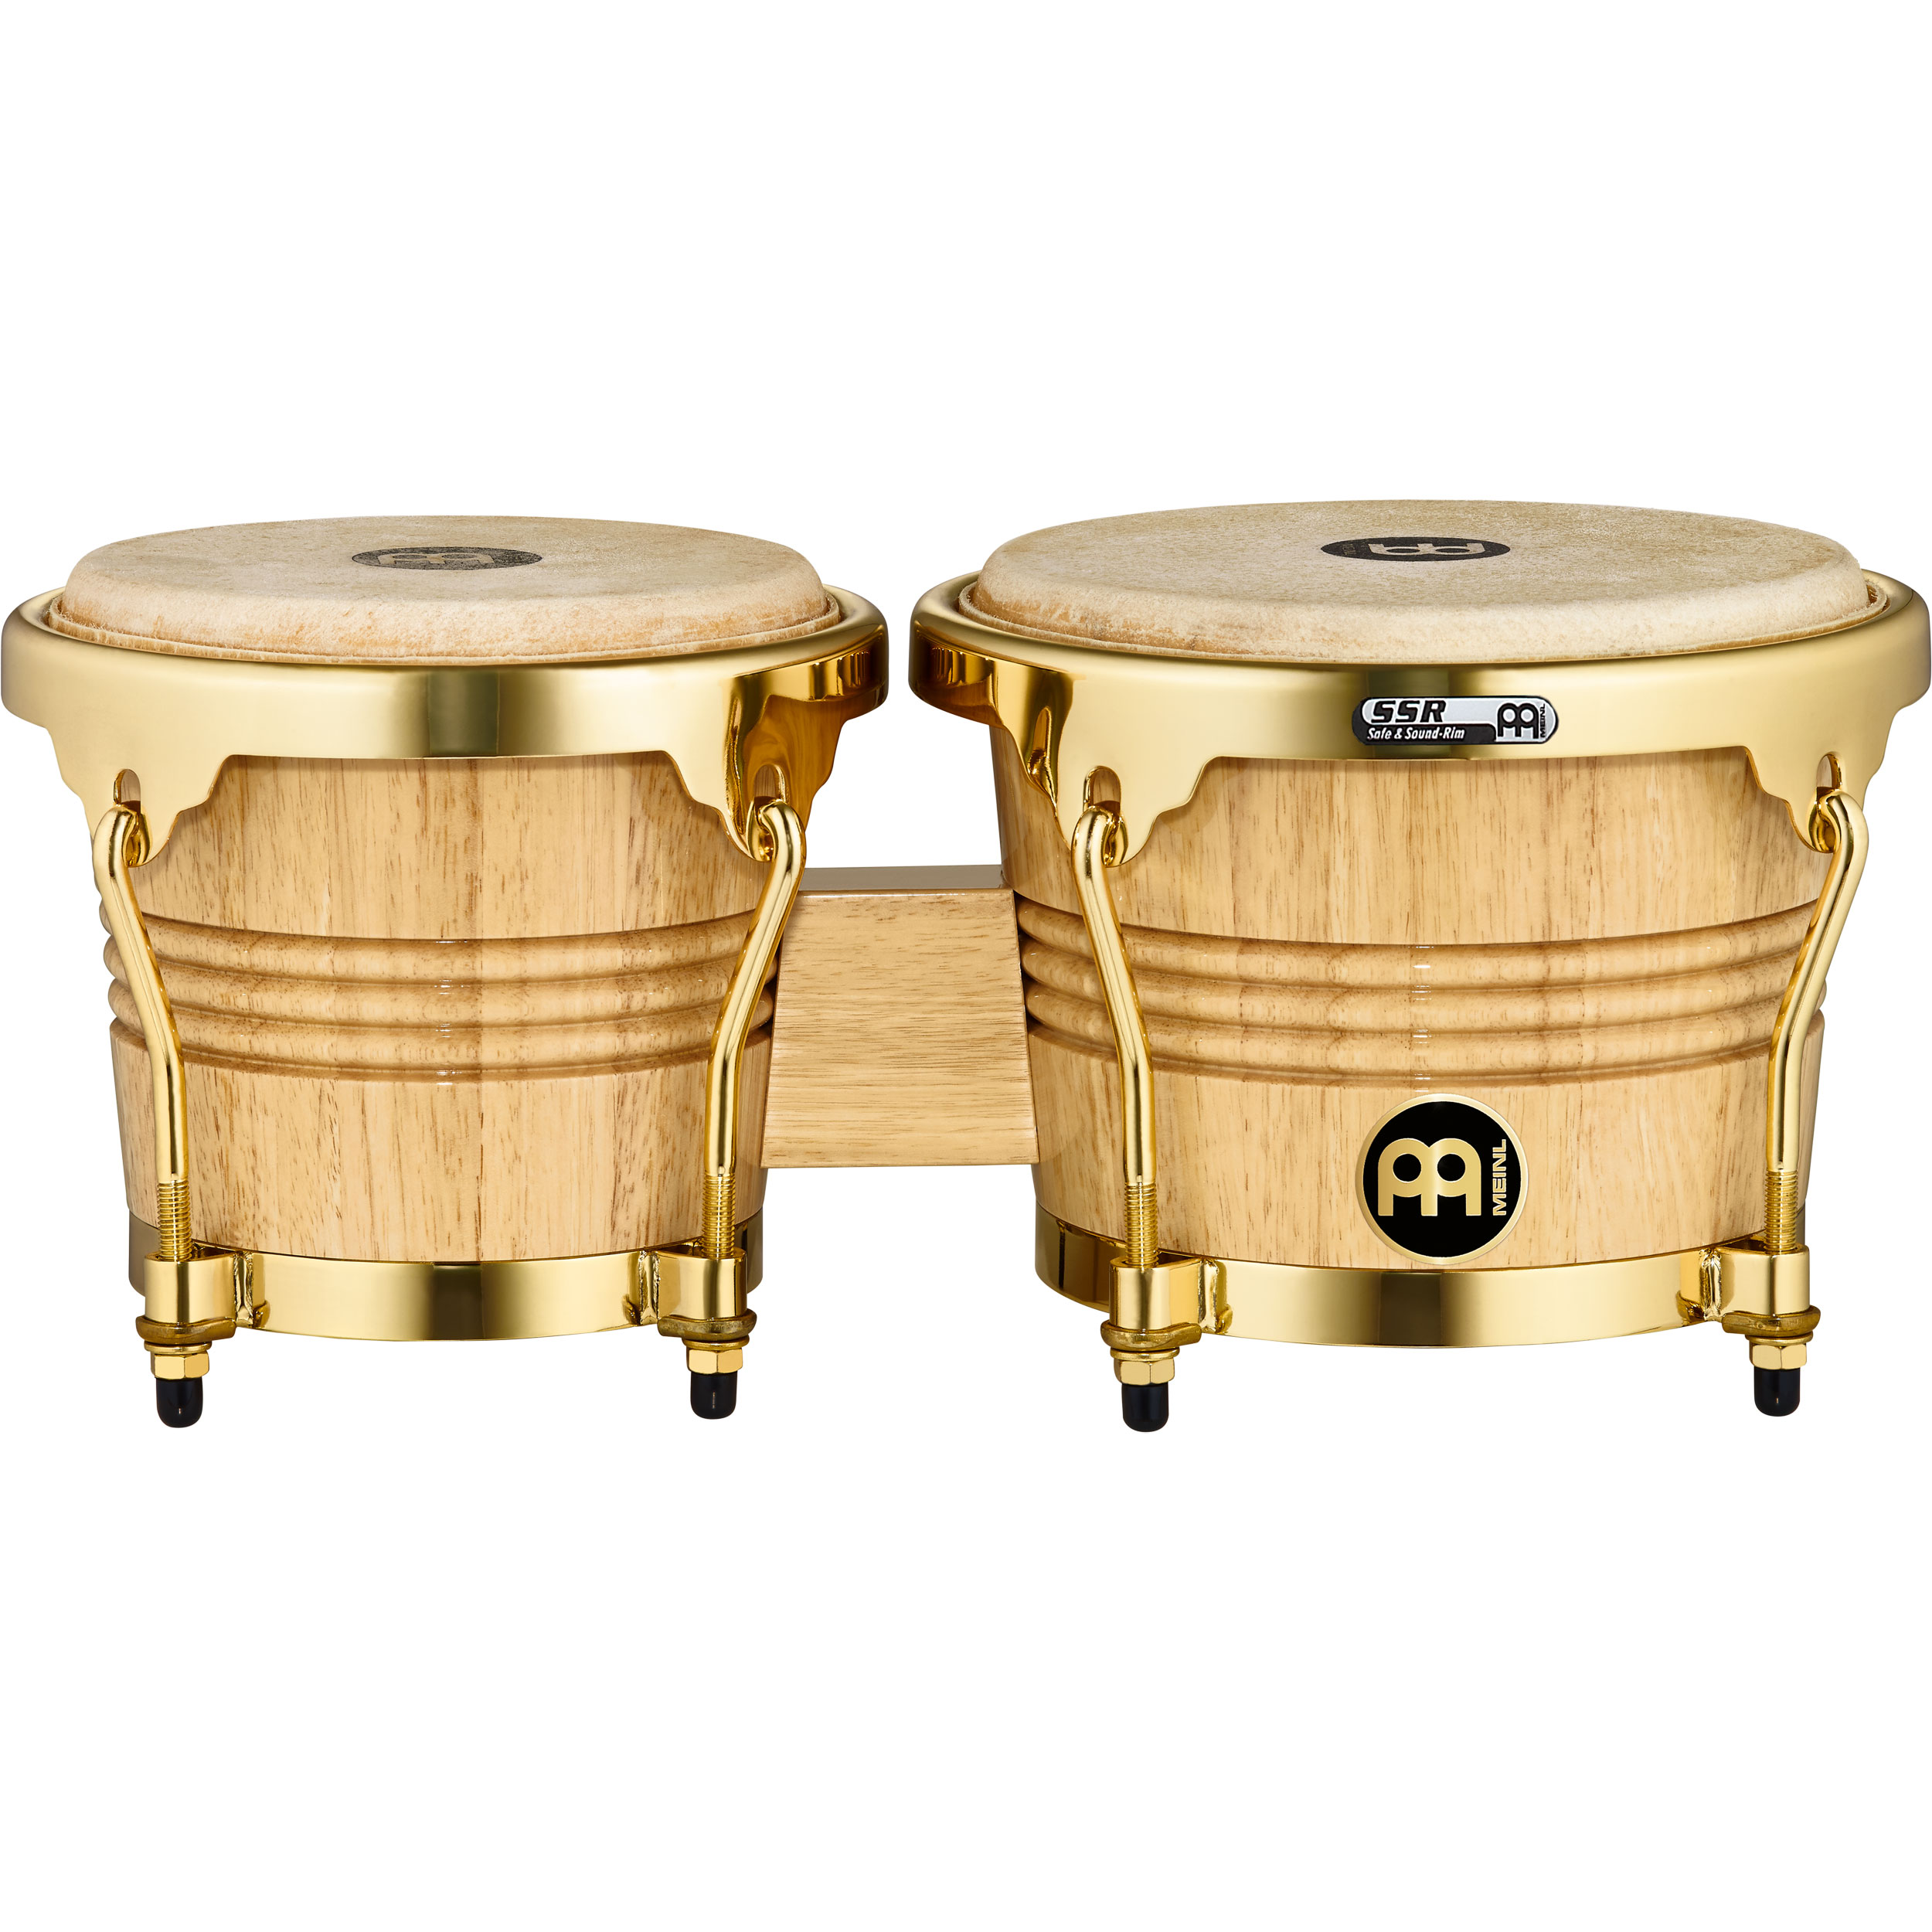 "Meinl 6.75"" & 8"" Wood Bongos with Gold Hardware"